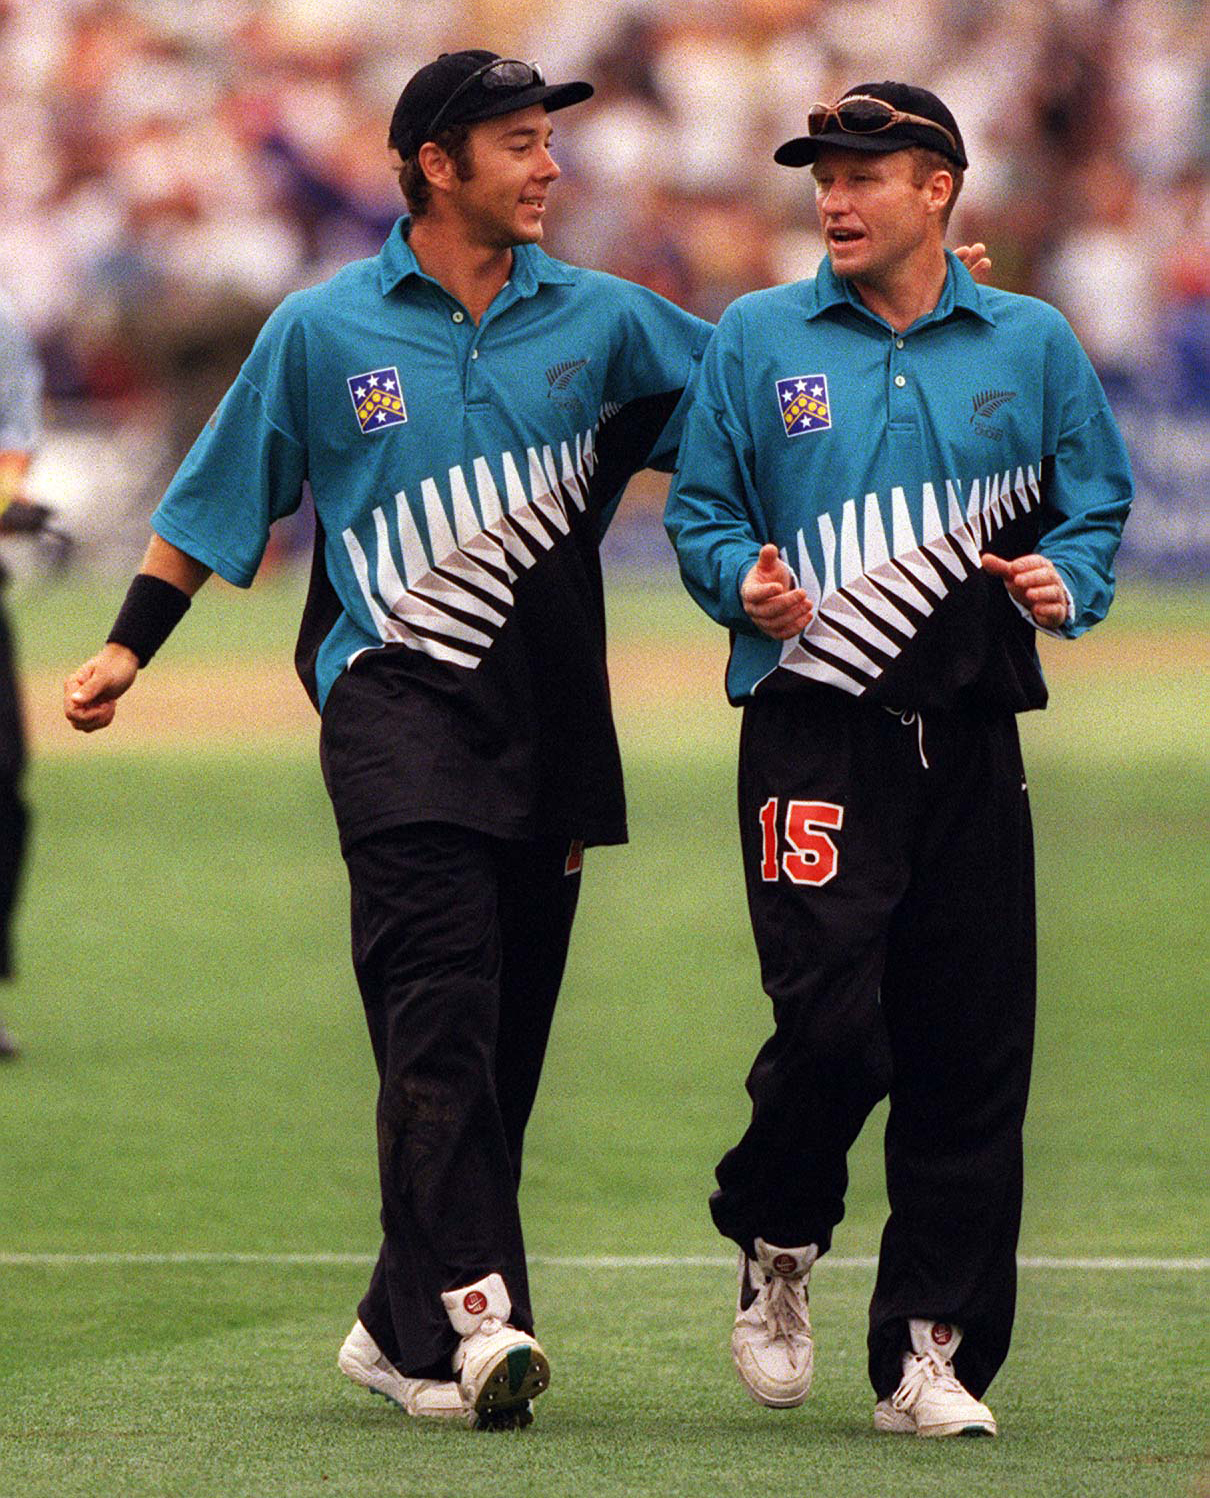 Nathan Astle and Mark Priest in the 1998 NZ ODI kit // Getty